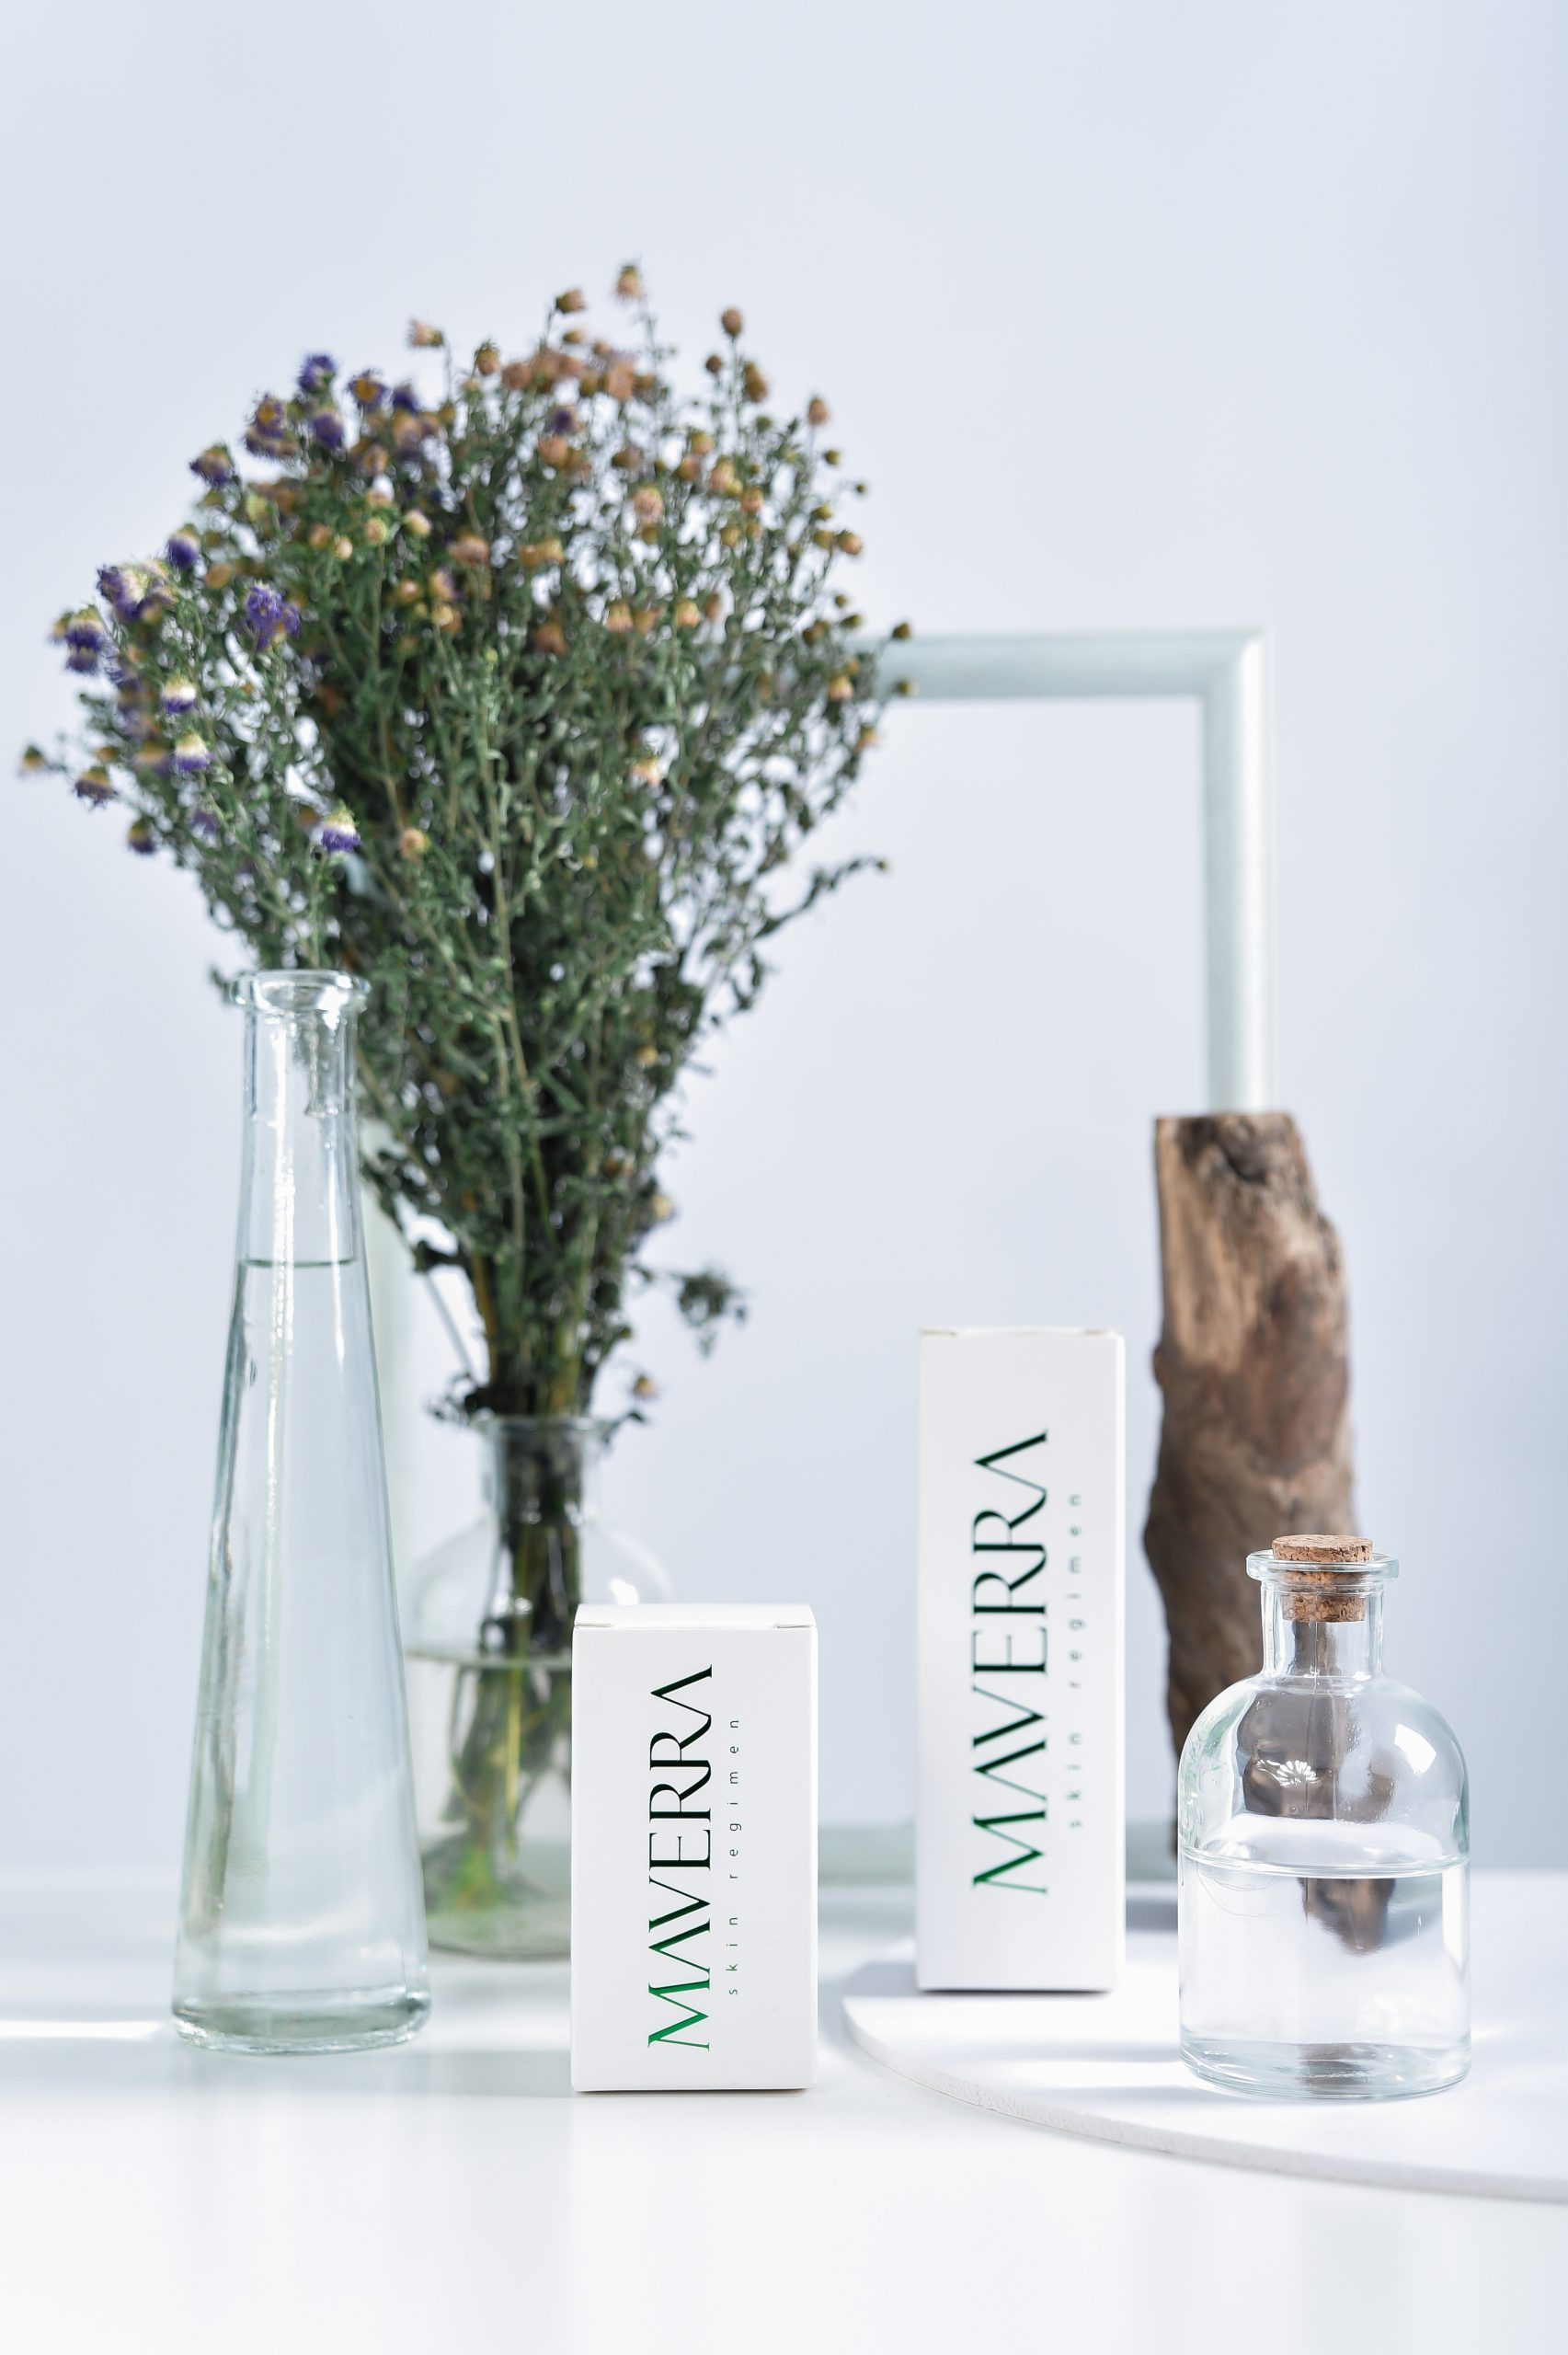 Product Photo Shooting For Maverra 4 scaled